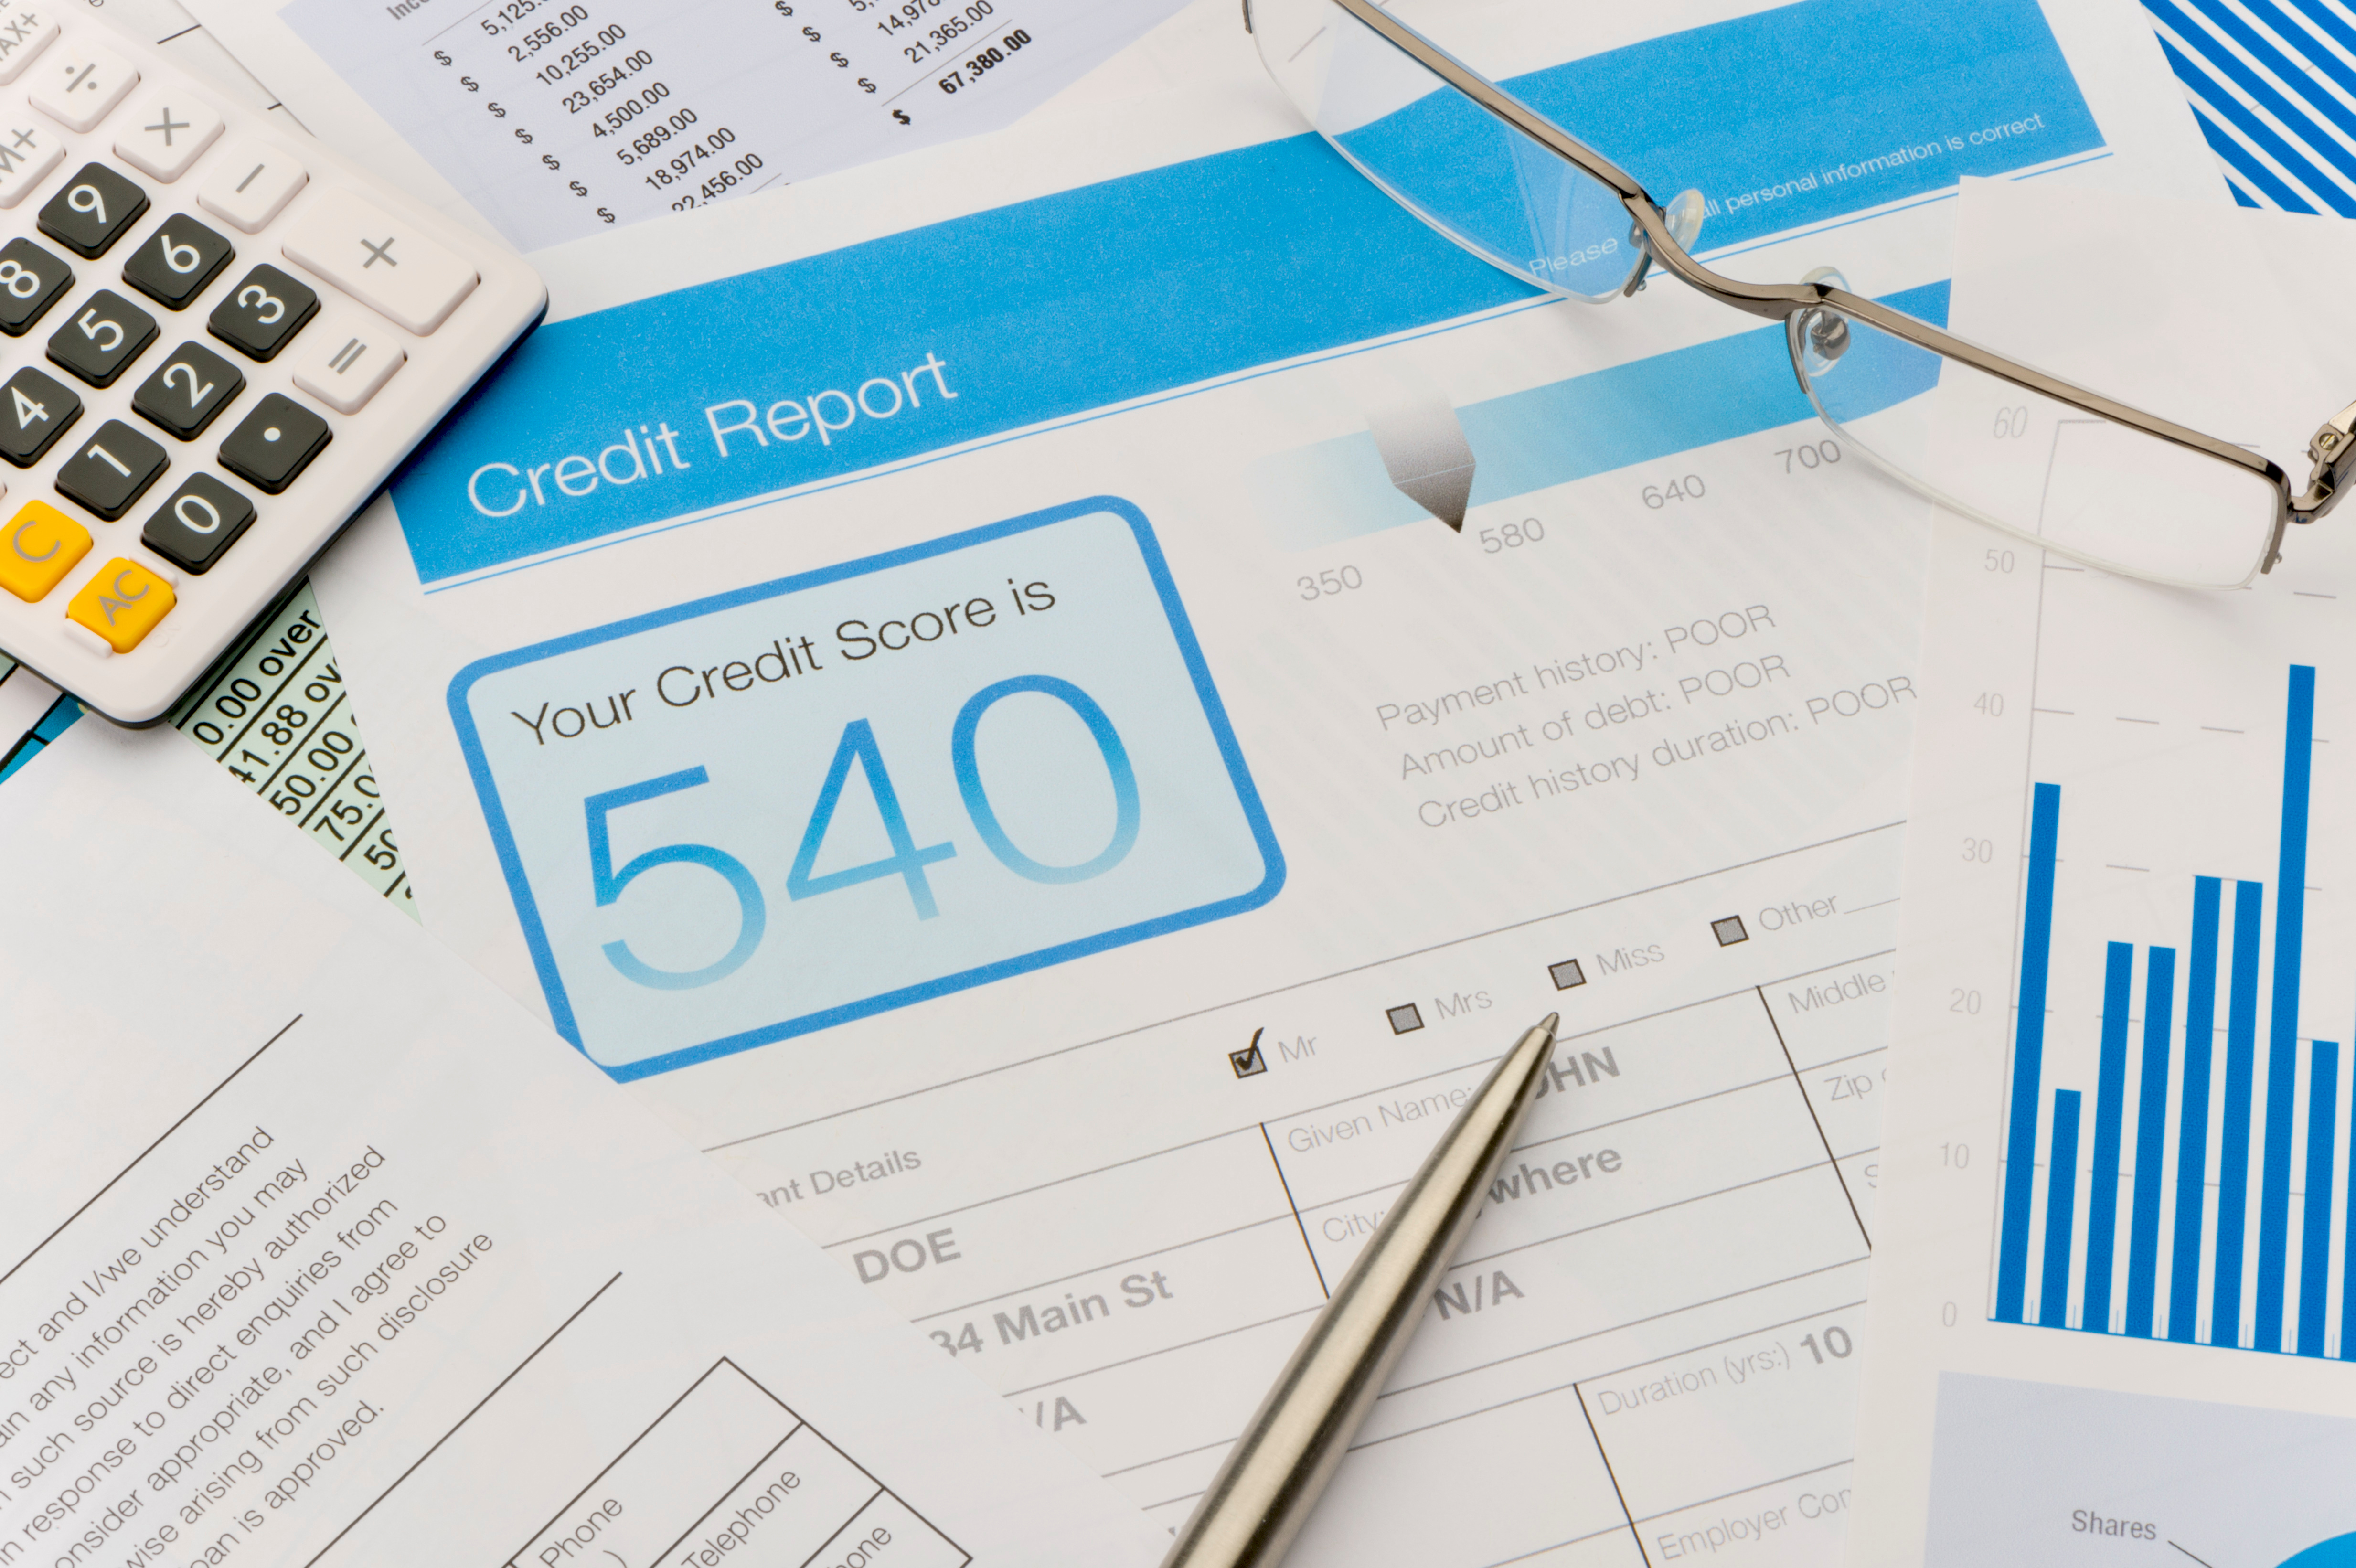 Your credit score is one of the most important bits of information when applying for a mortgage